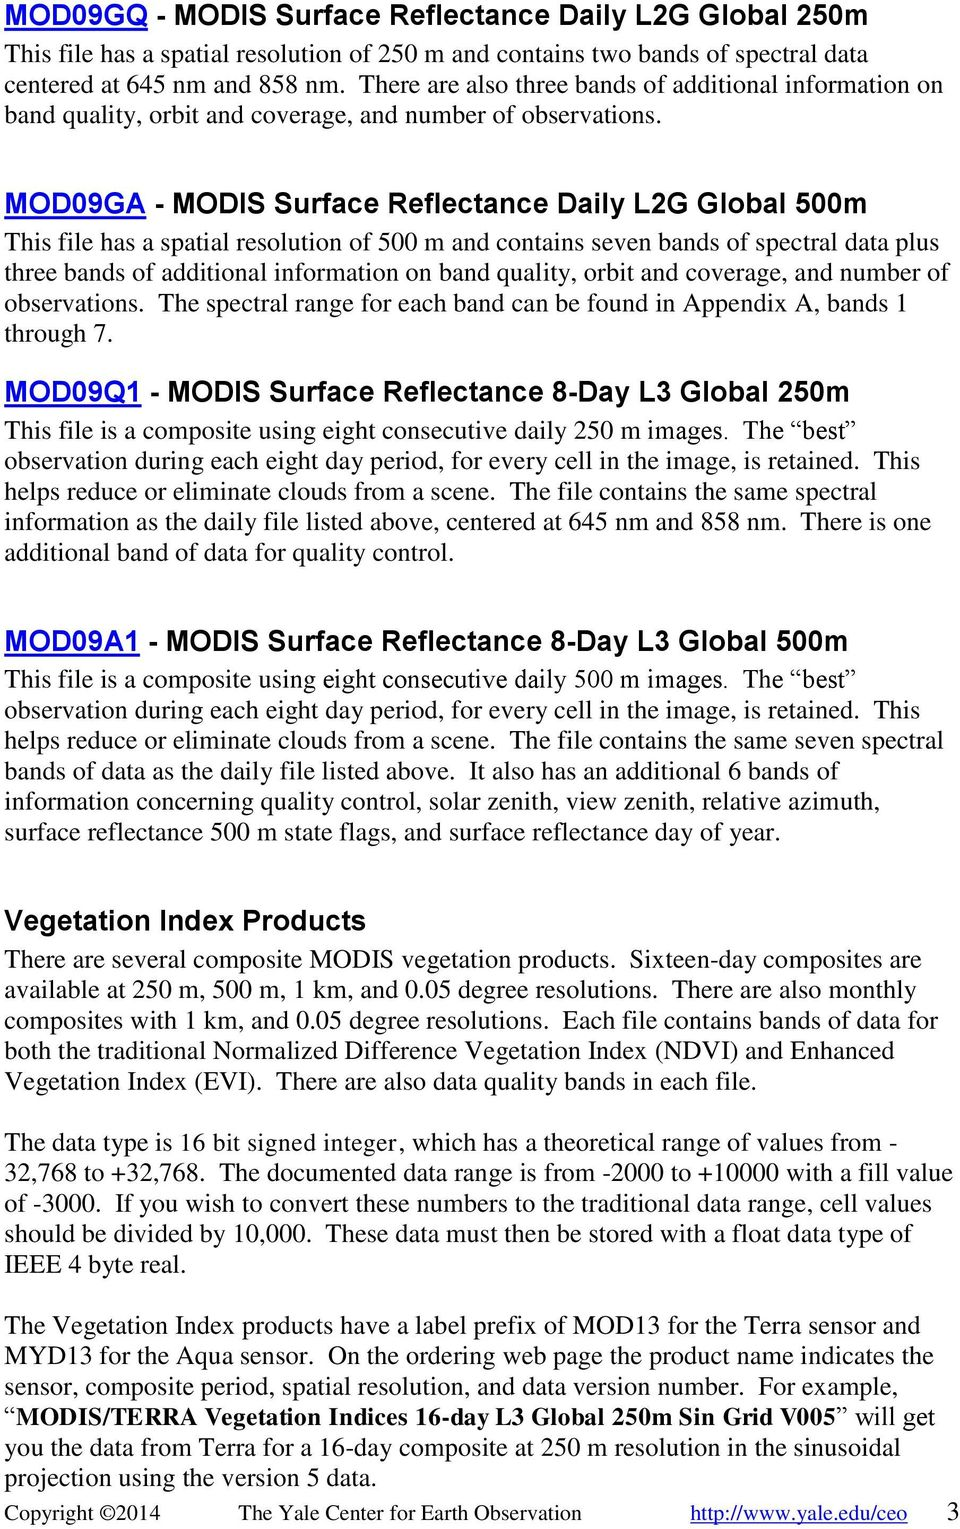 MOD09GA - MODIS Surface Reflectance Daily L2G Global 500m This file has a spatial resolution of 500 m and contains seven bands of spectral data plus three bands of additional information on band